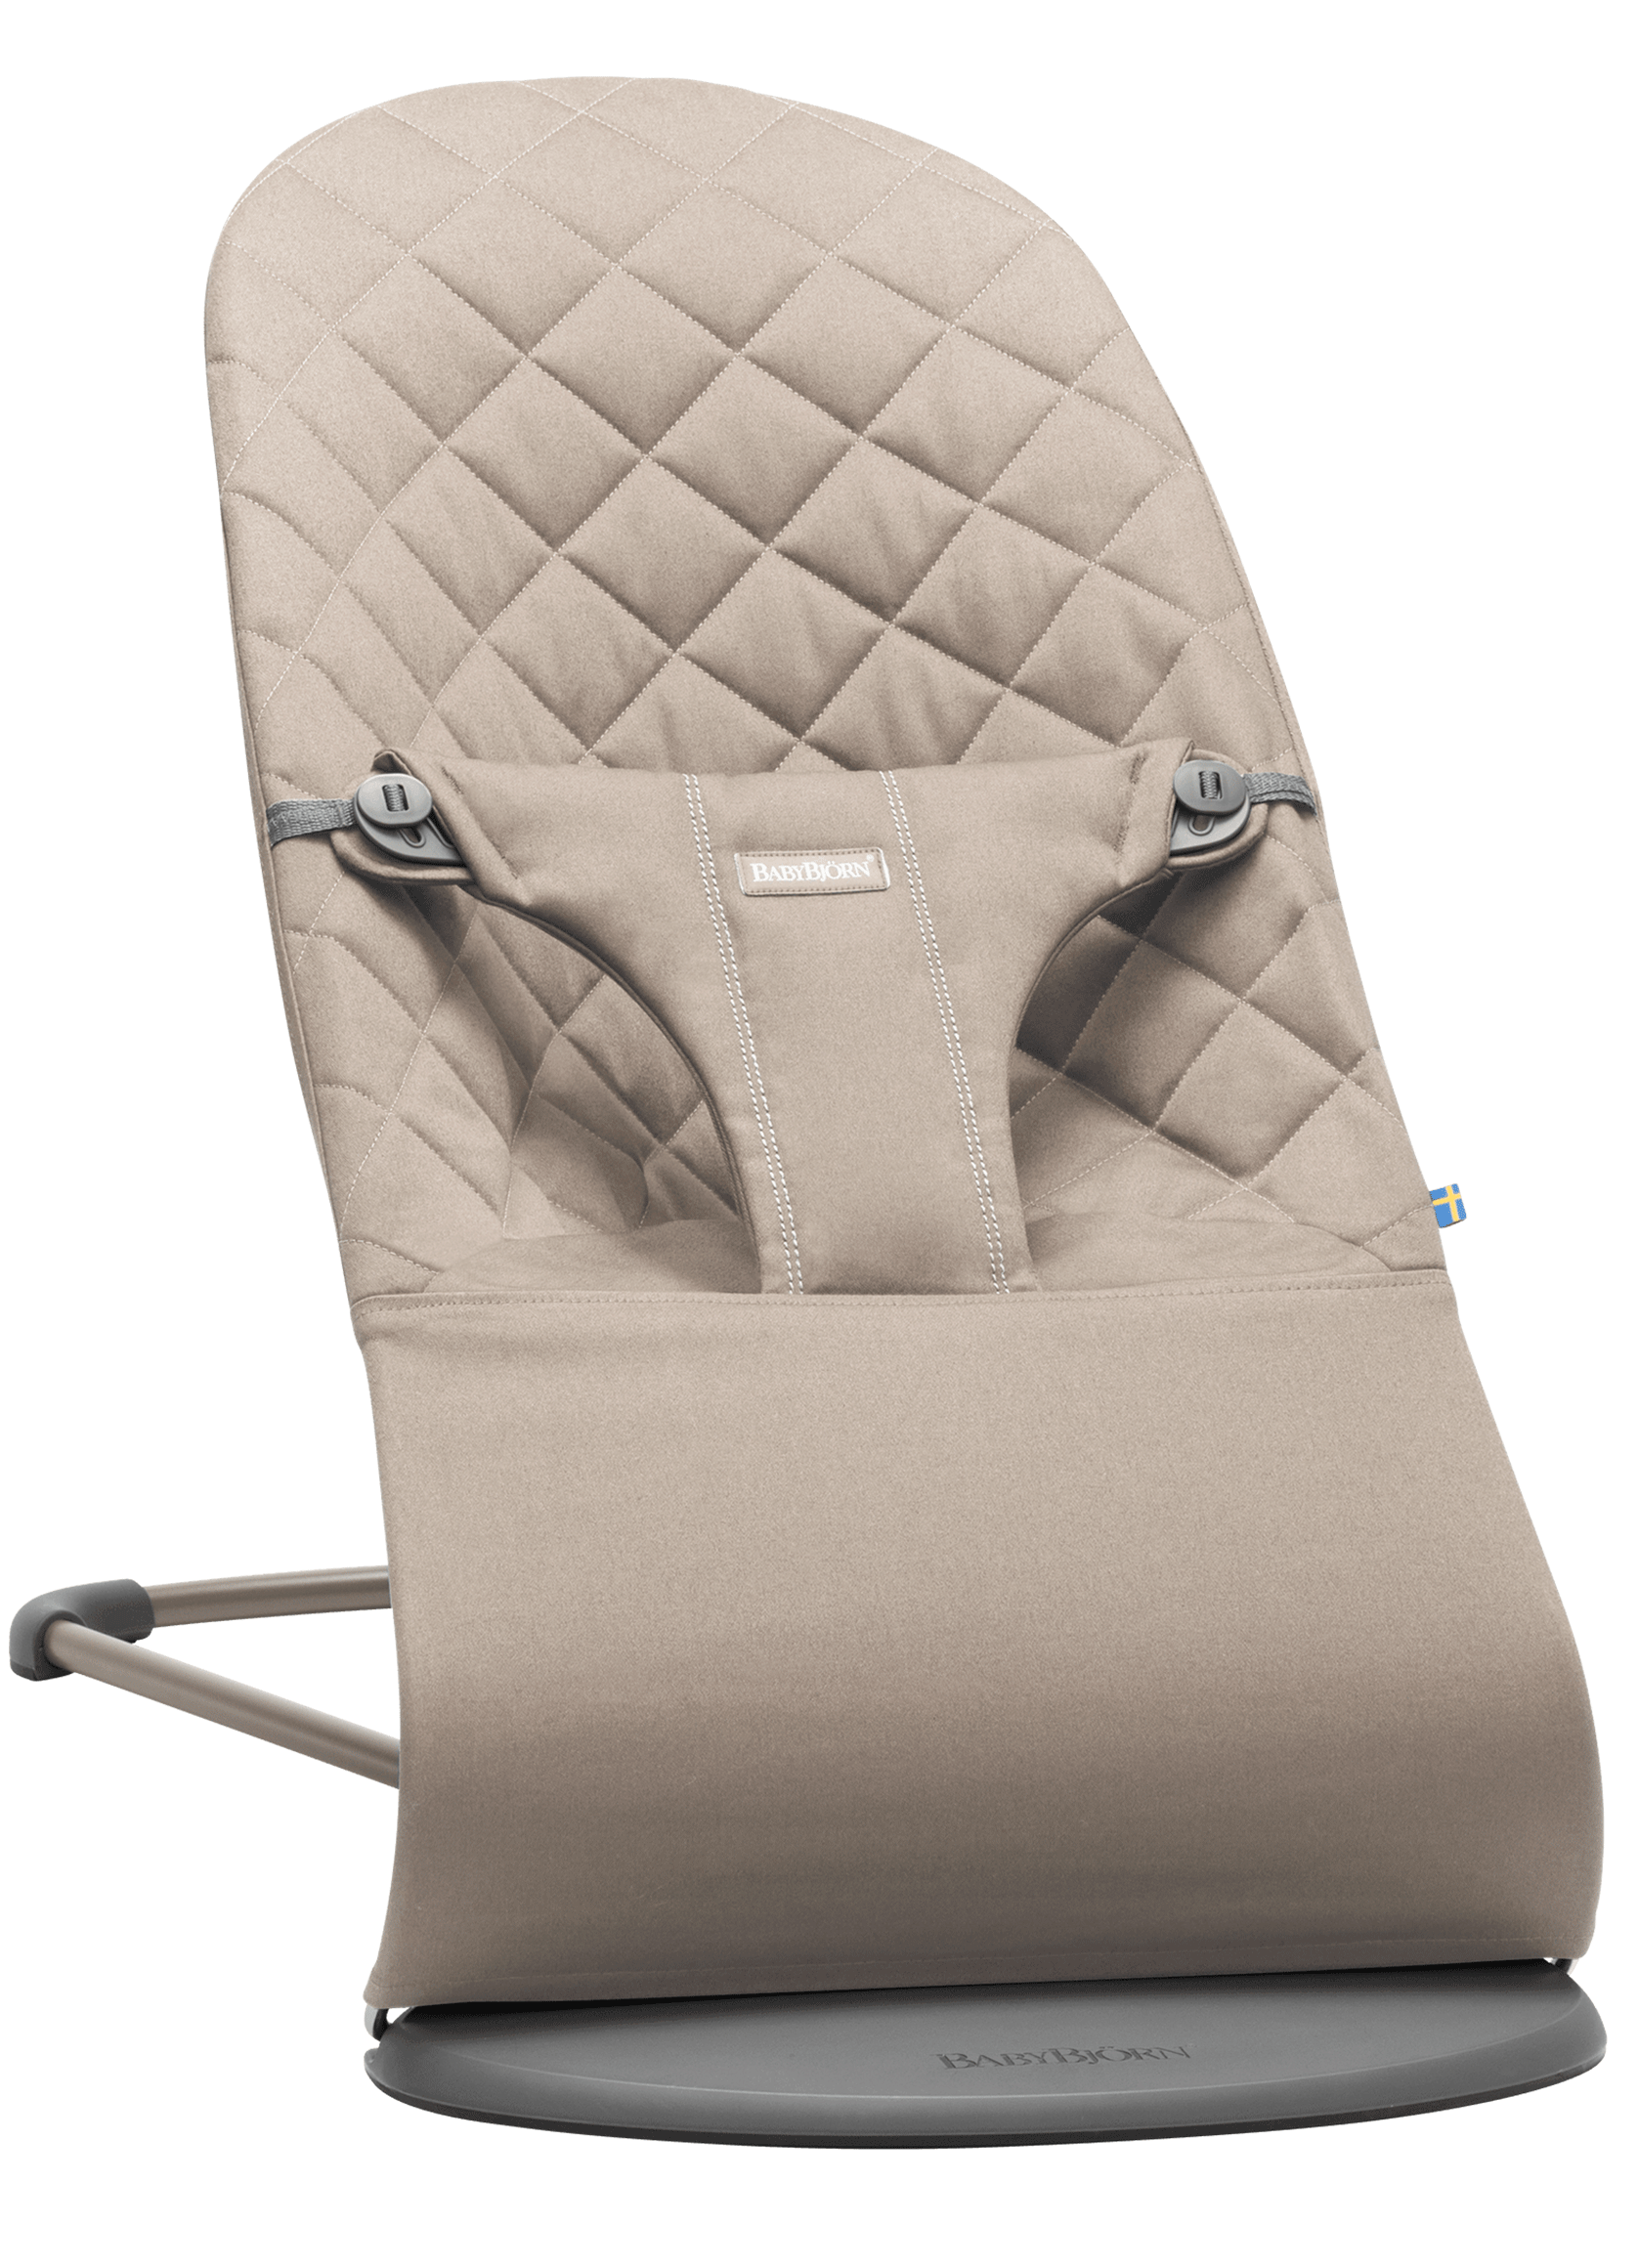 BABYBJORN Bouncer Bliss - Sand Grey, Cotton